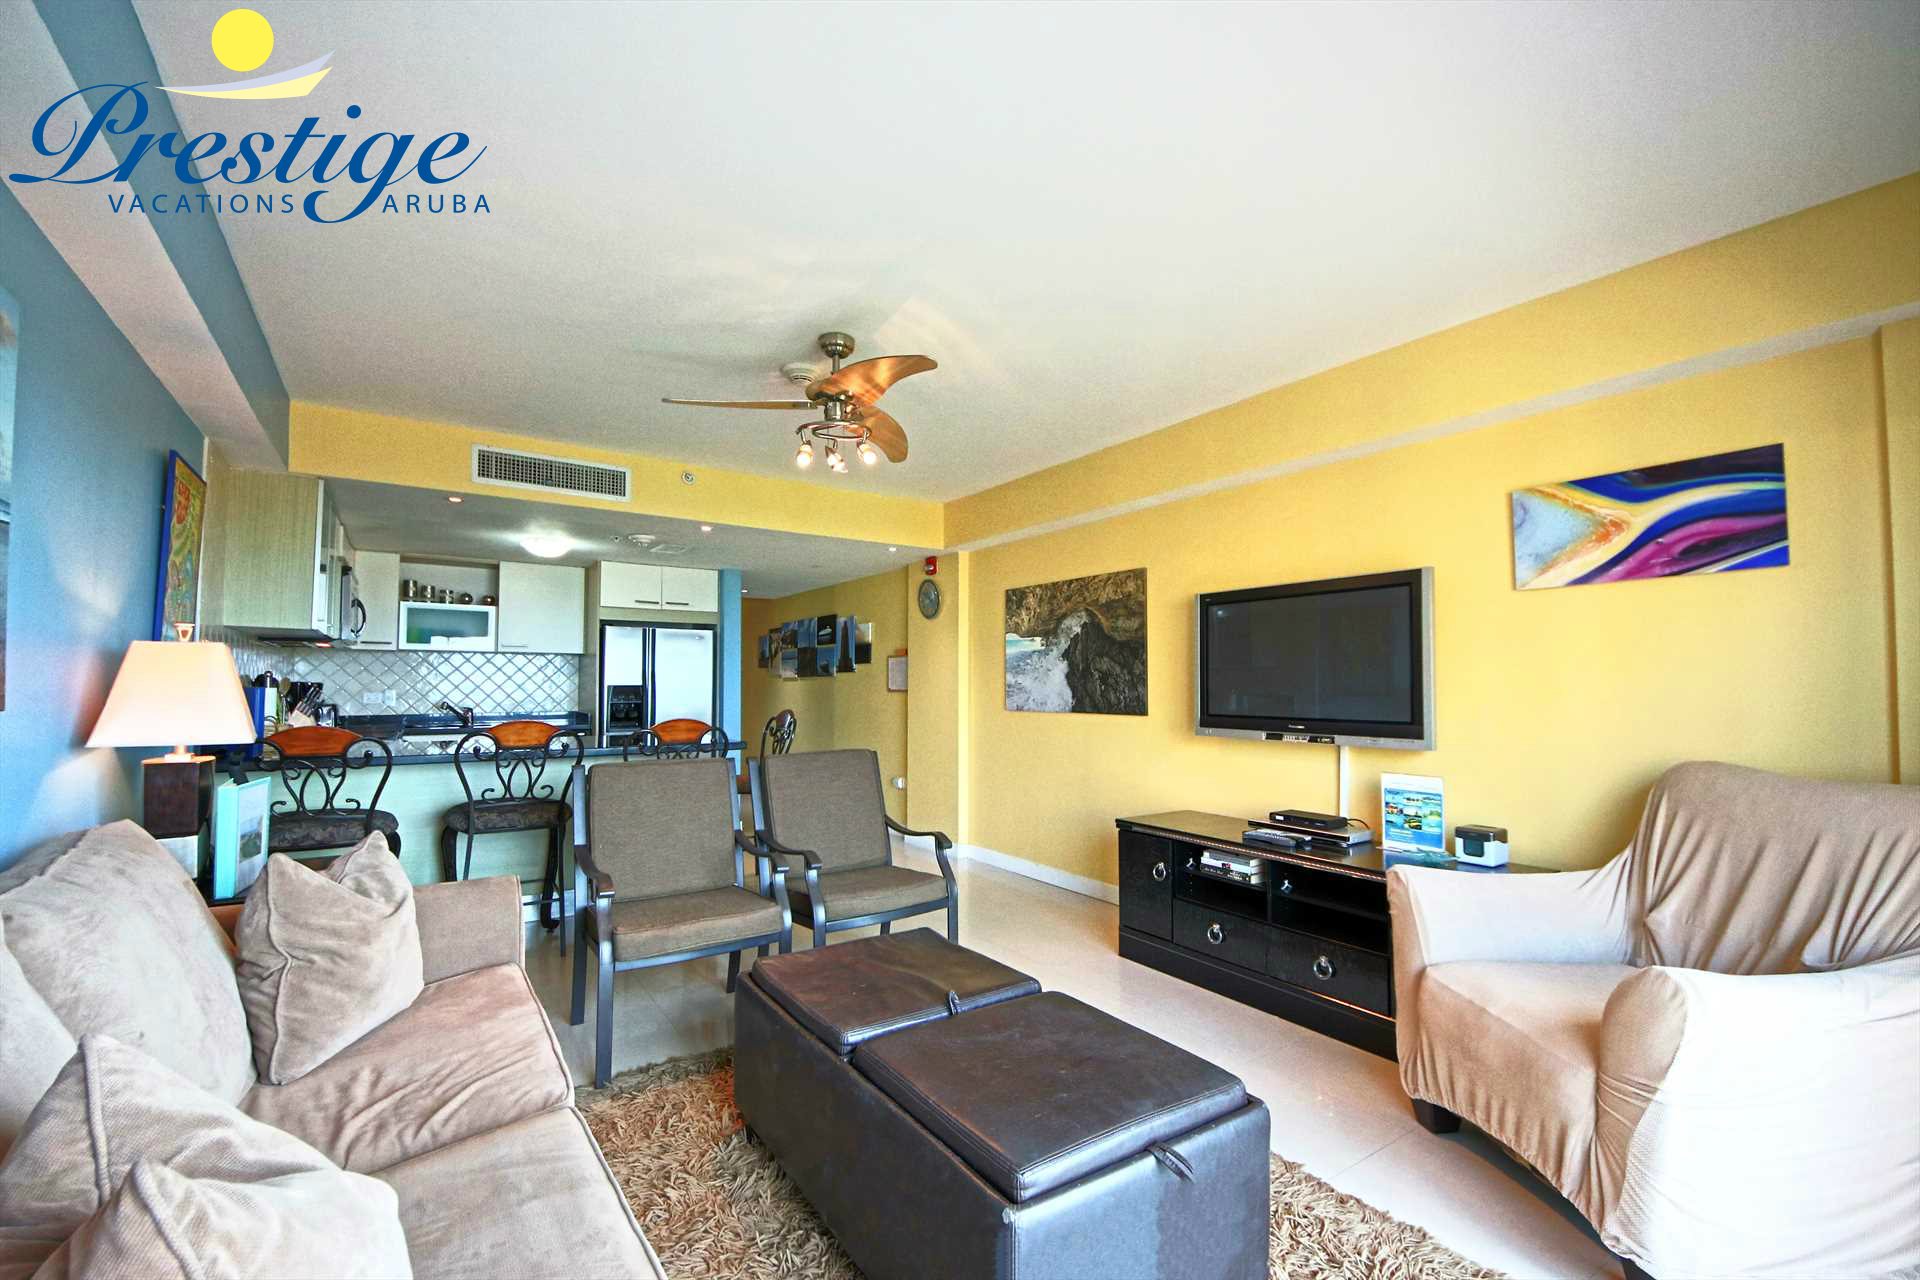 Another full view of the living room with beautiful local art and Aruba scenery photographs